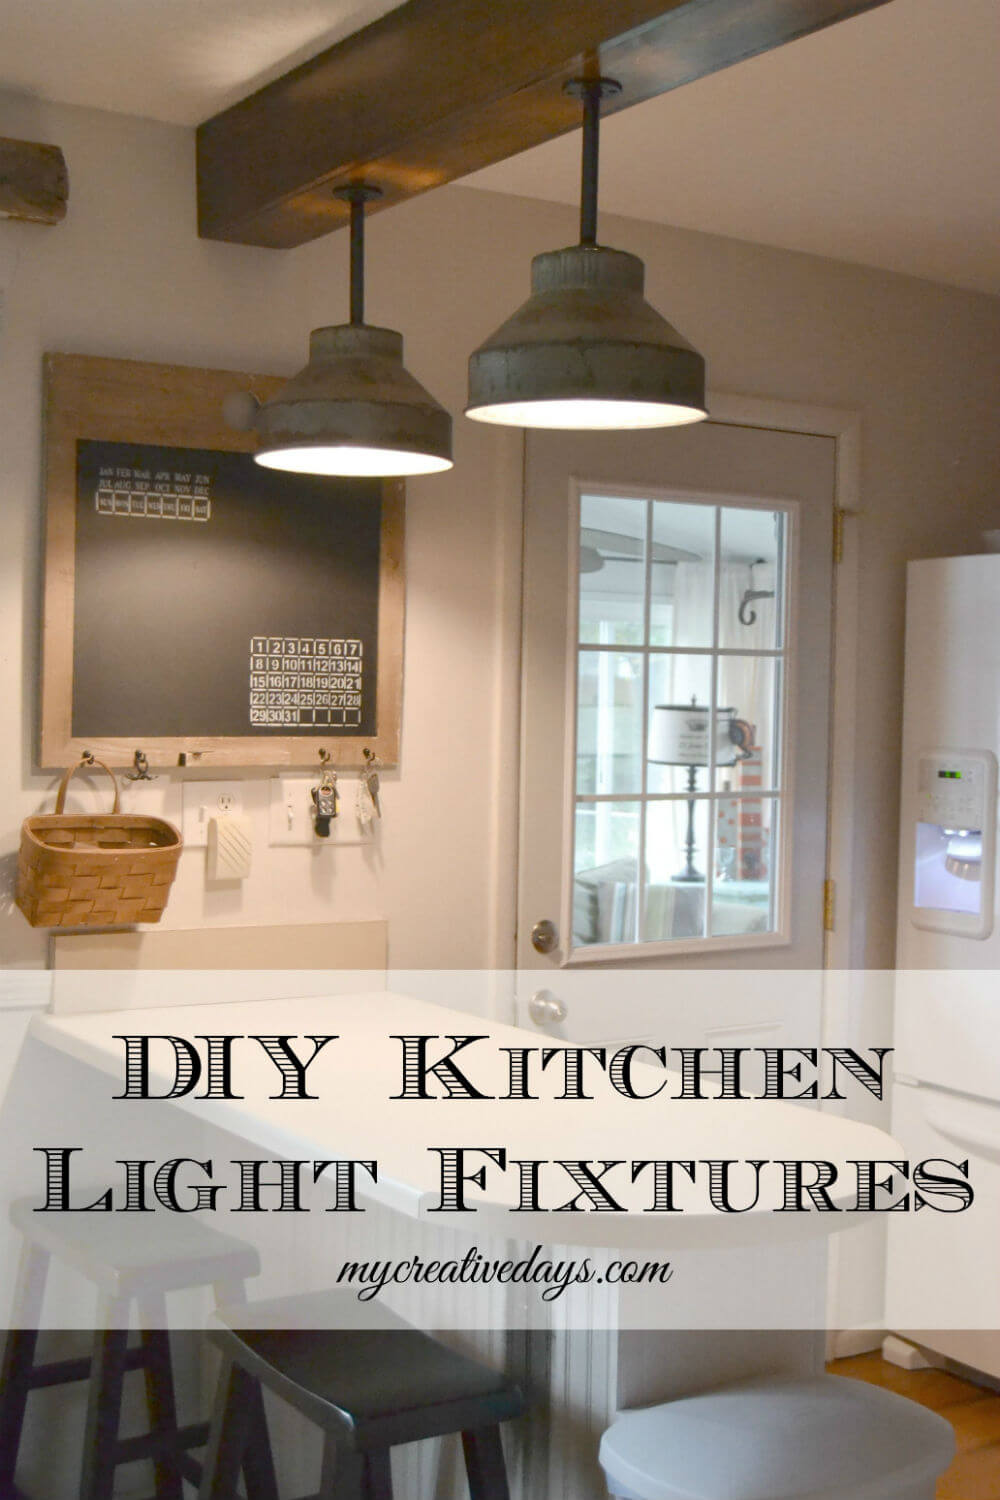 DIY Hanging Kitchen Light Fixtures